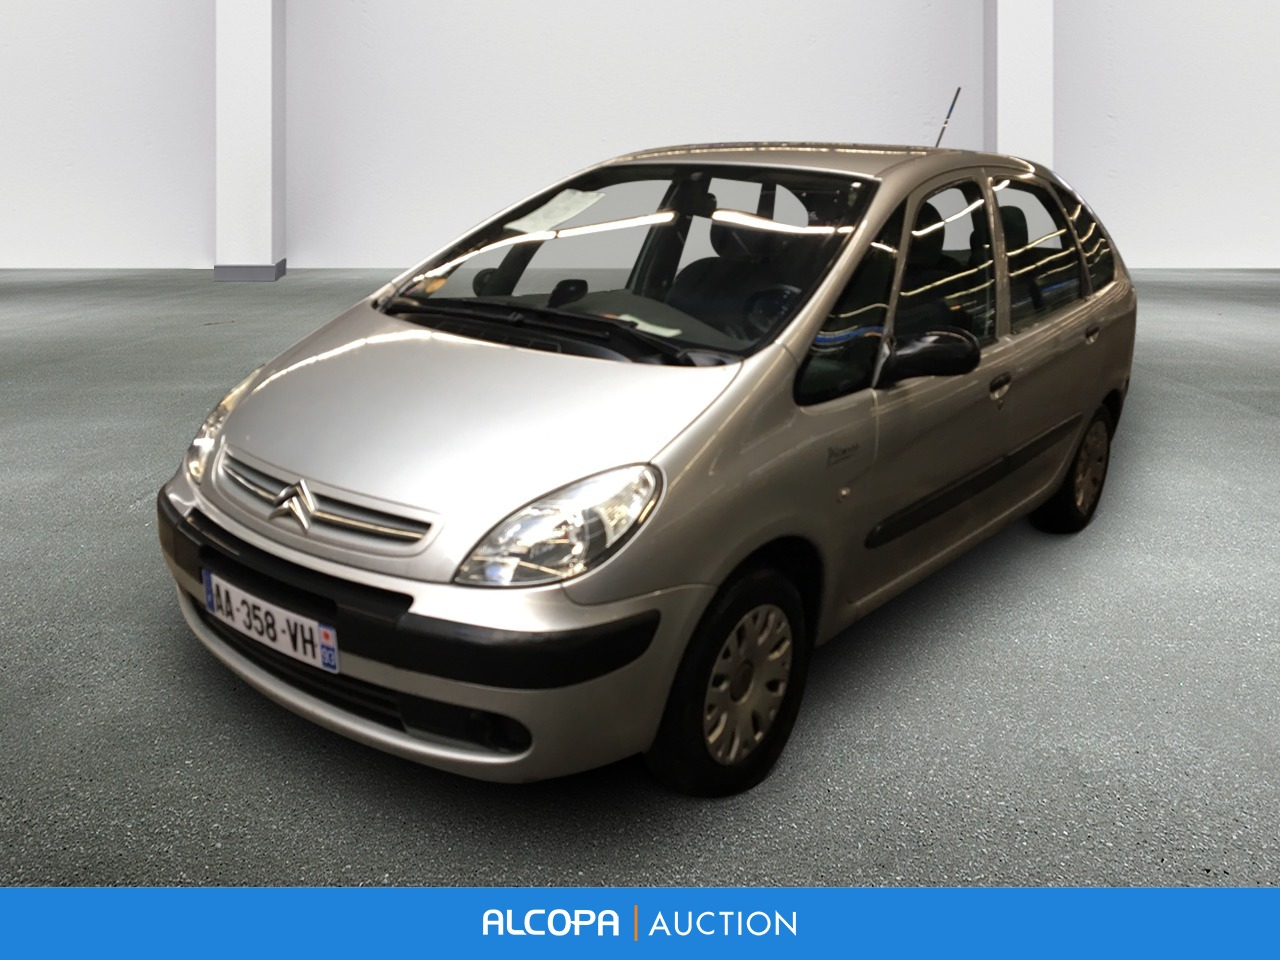 citroen xsara picasso 10 1998 01 2011 xsara picasso 1 6 hdi 110 fap pack alcopa auction. Black Bedroom Furniture Sets. Home Design Ideas